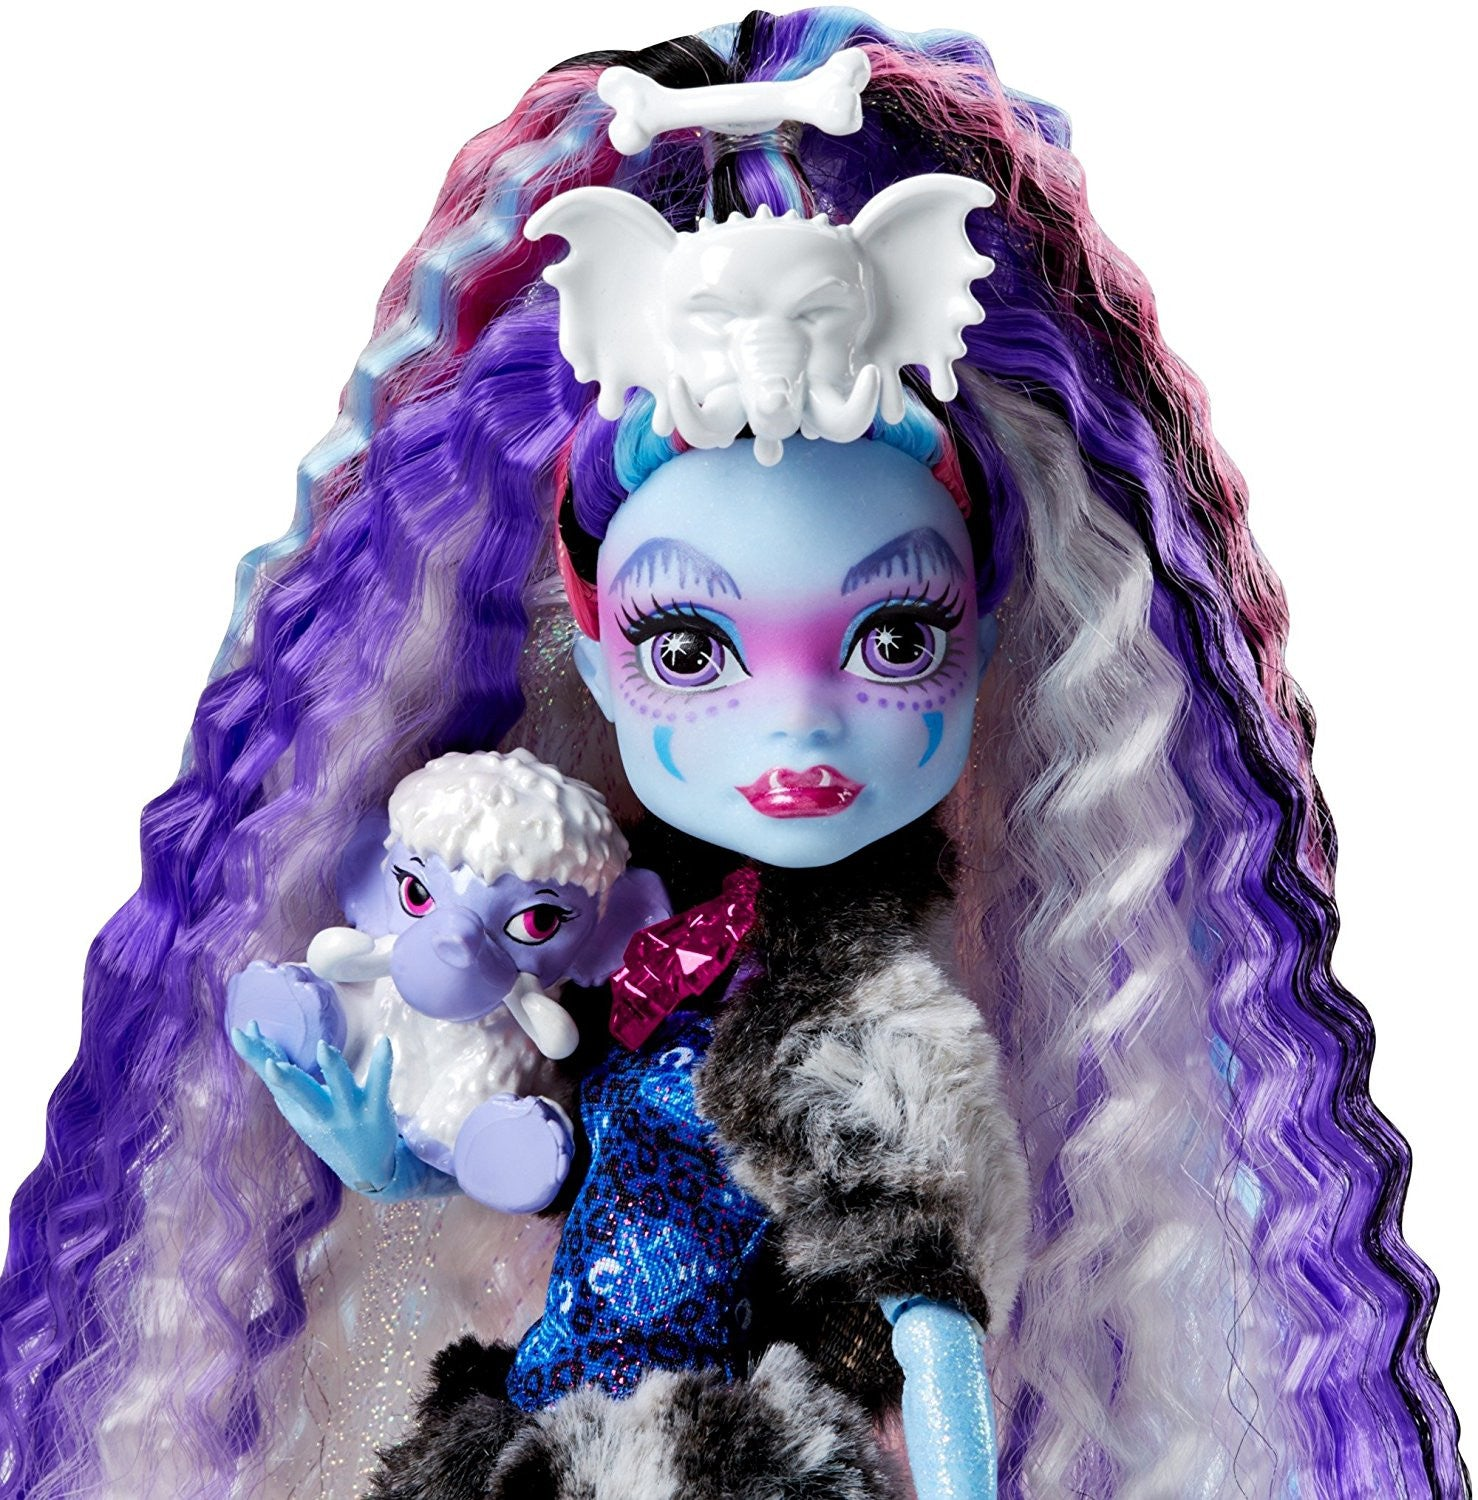 Uncategorized Abbey Monster High new monster high abbey bominable collector edition doll toots toys doll